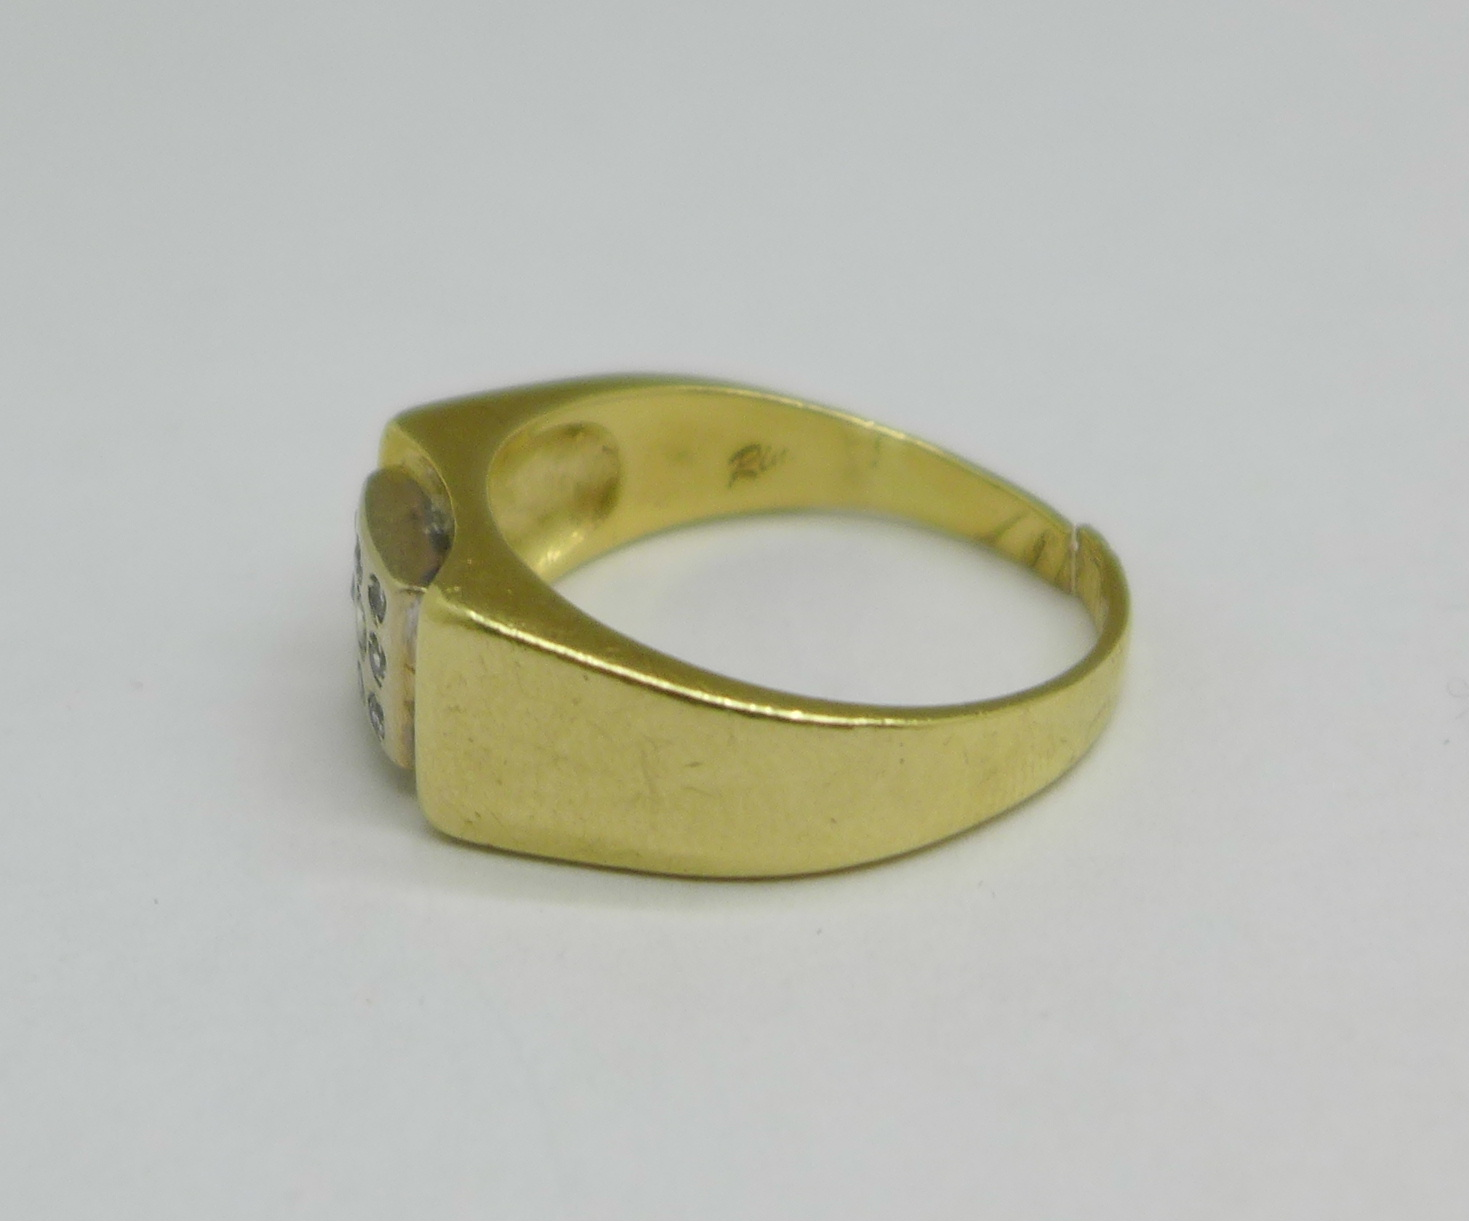 A 14ct gold and white stone ring, 7.9g, shank a/f - Image 2 of 4